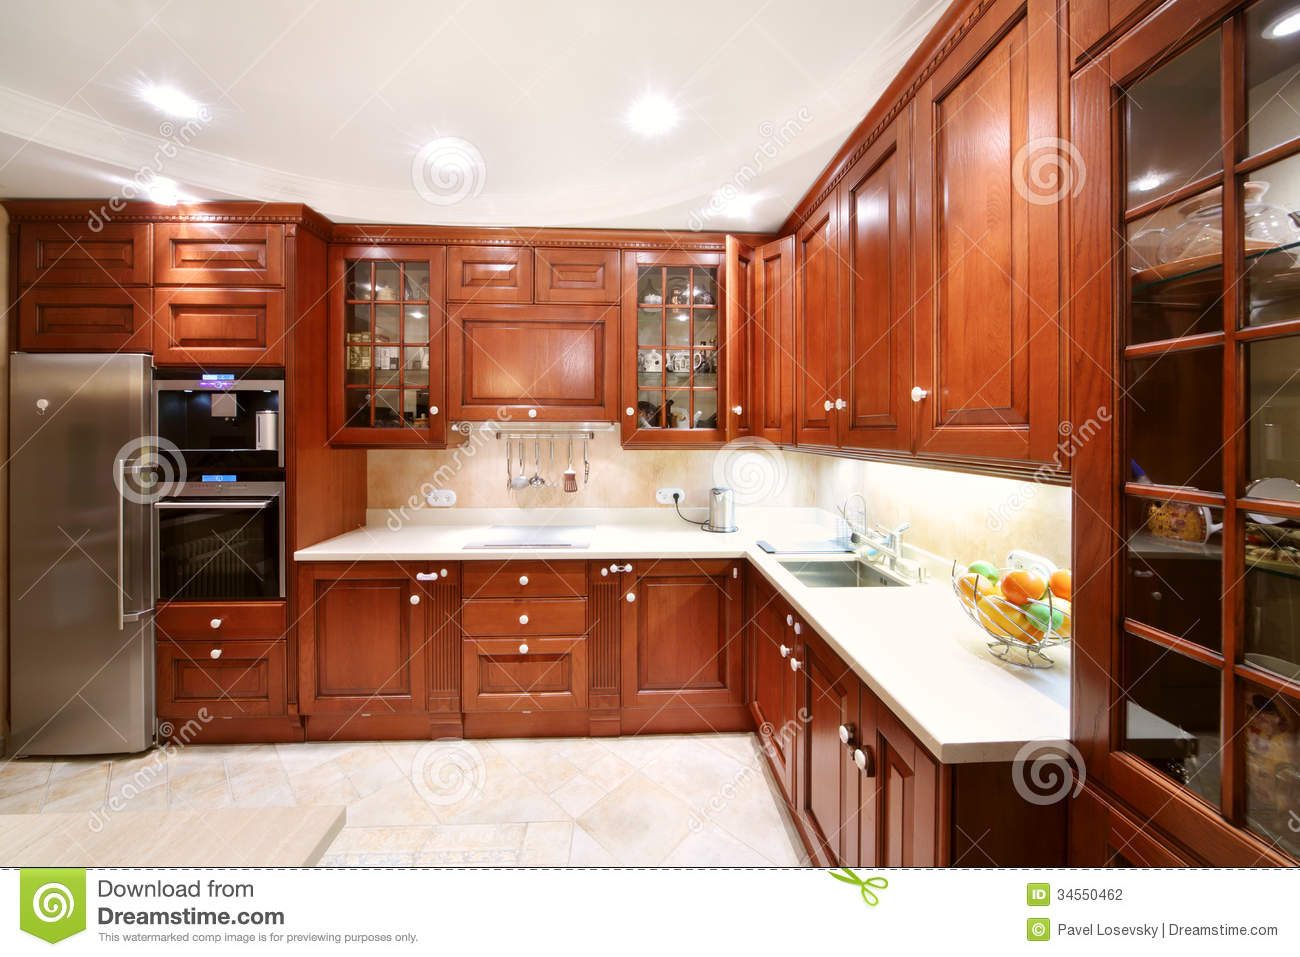 in kitchen nico kitchens s pretoria products cupboards cupboard cherry